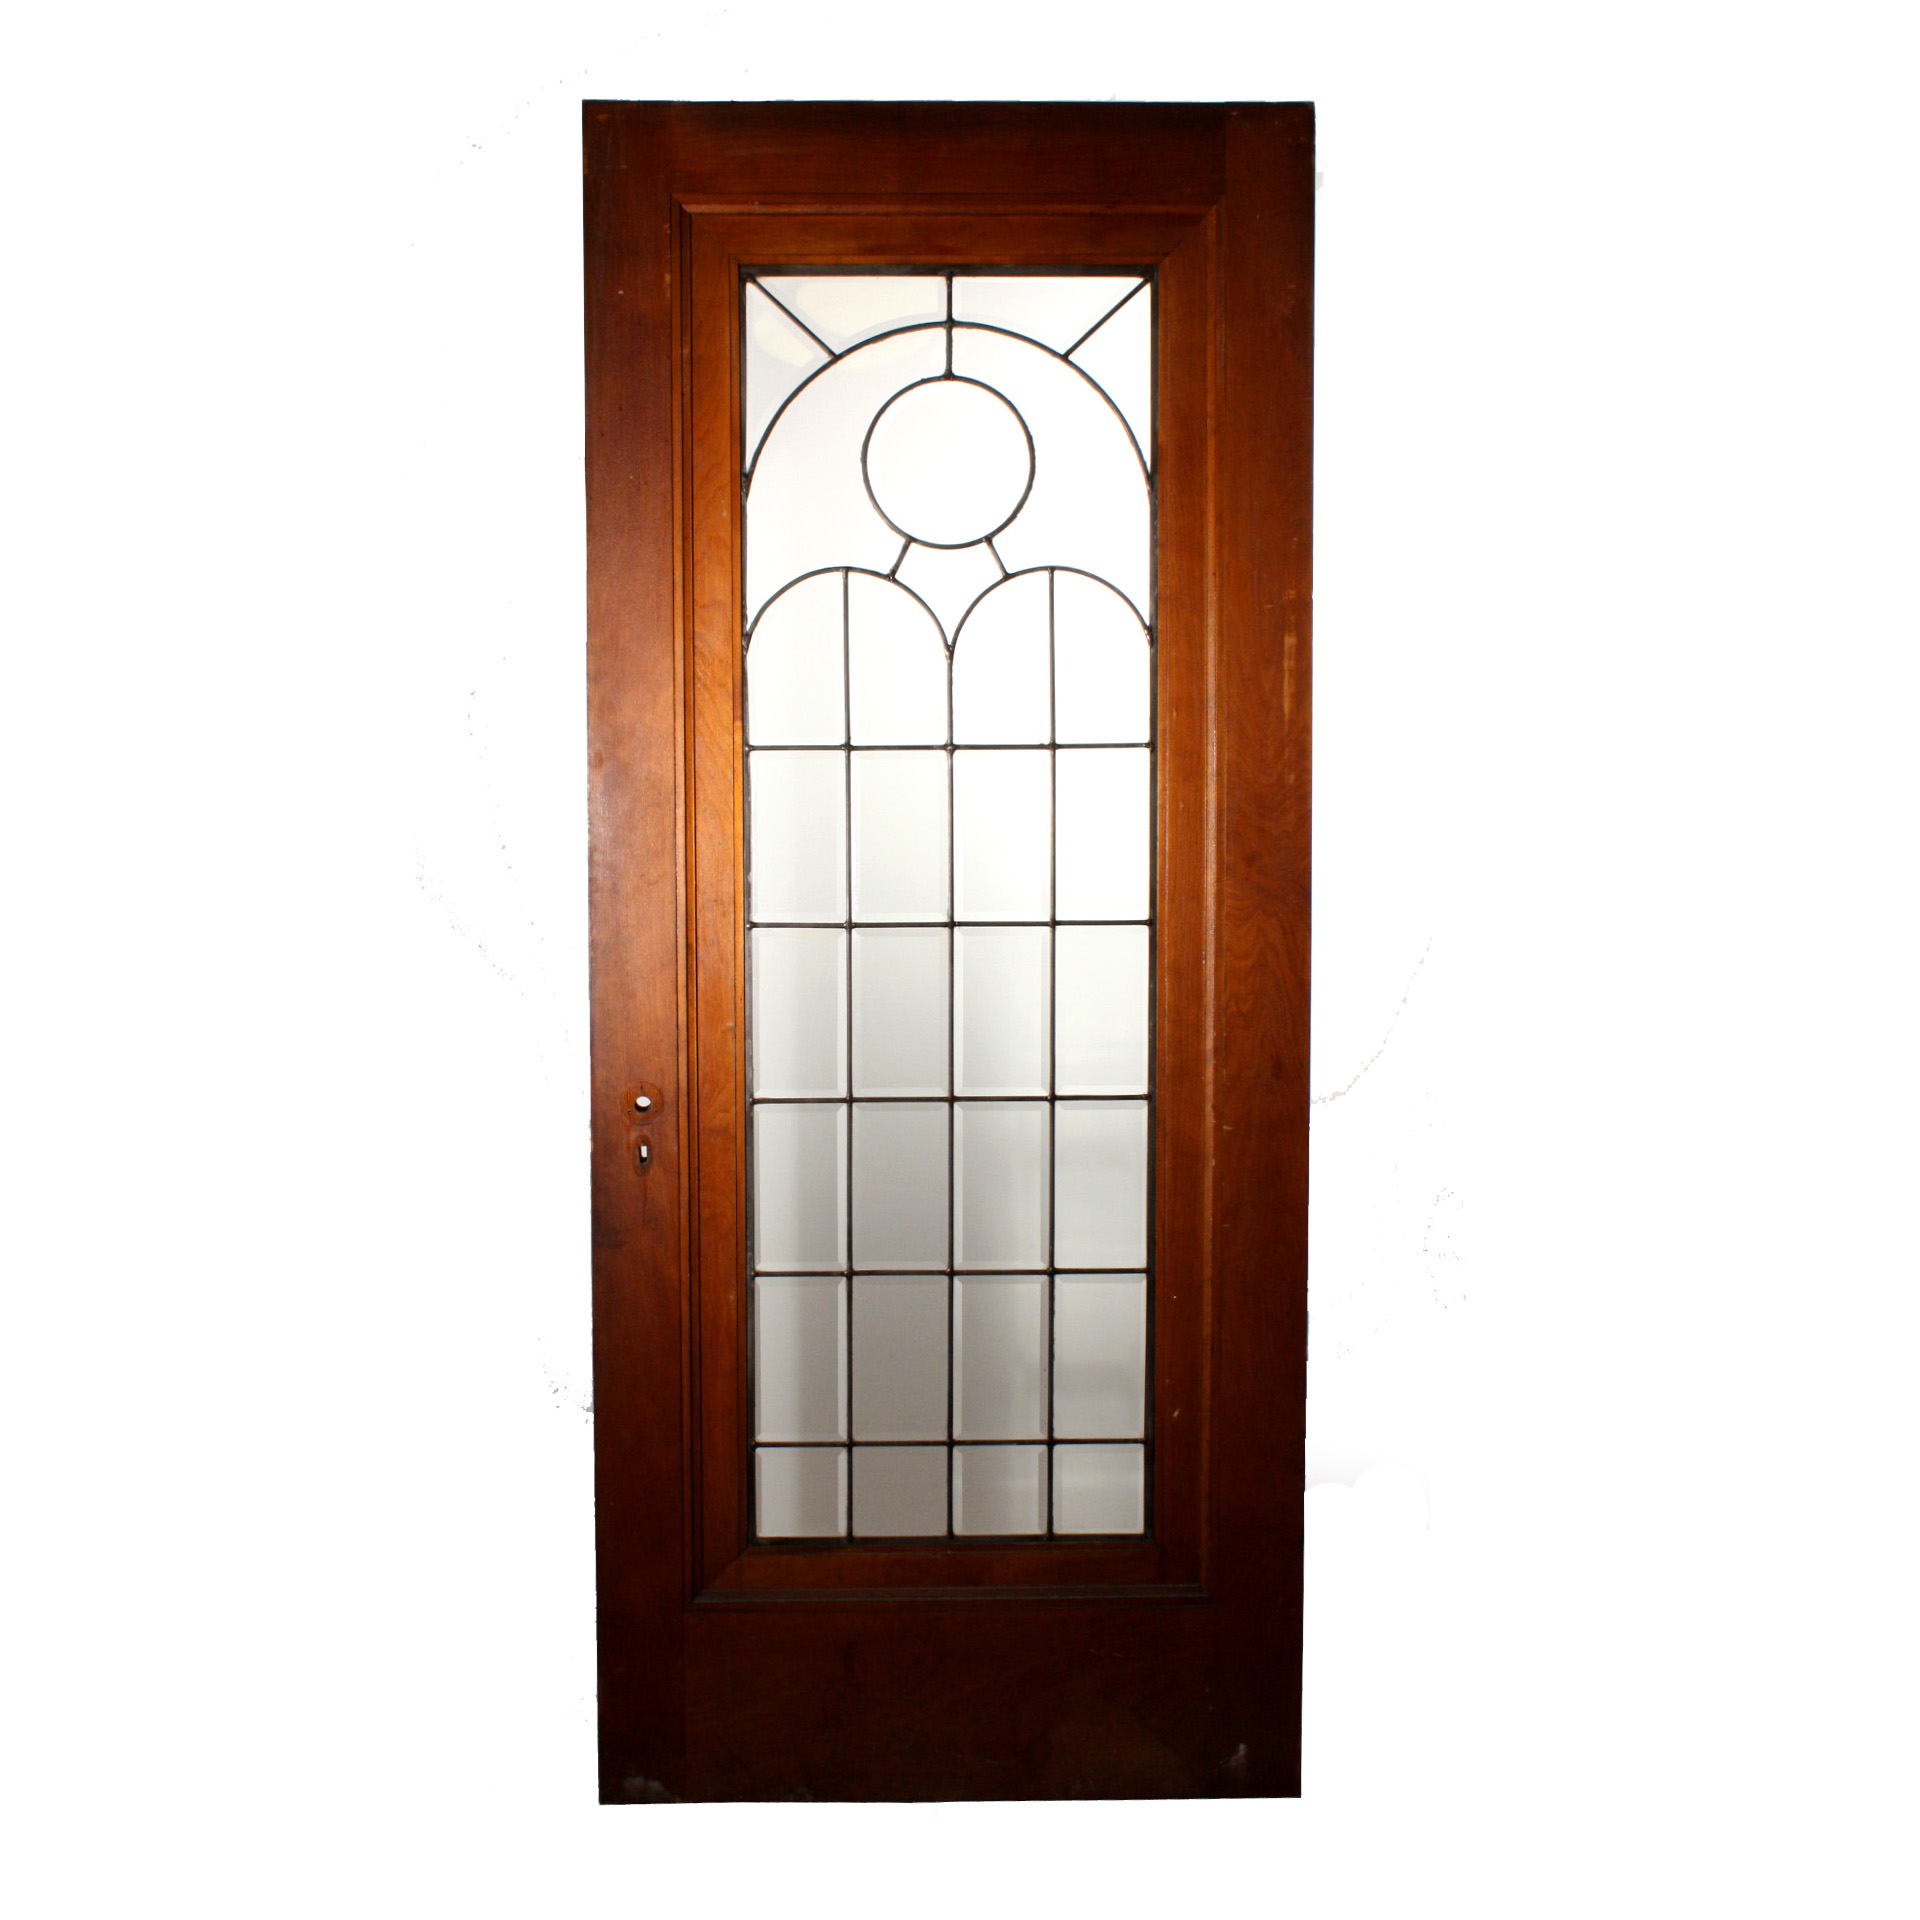 Stained glass front doors for sale large 38 antique oak for Oversized exterior doors for sale